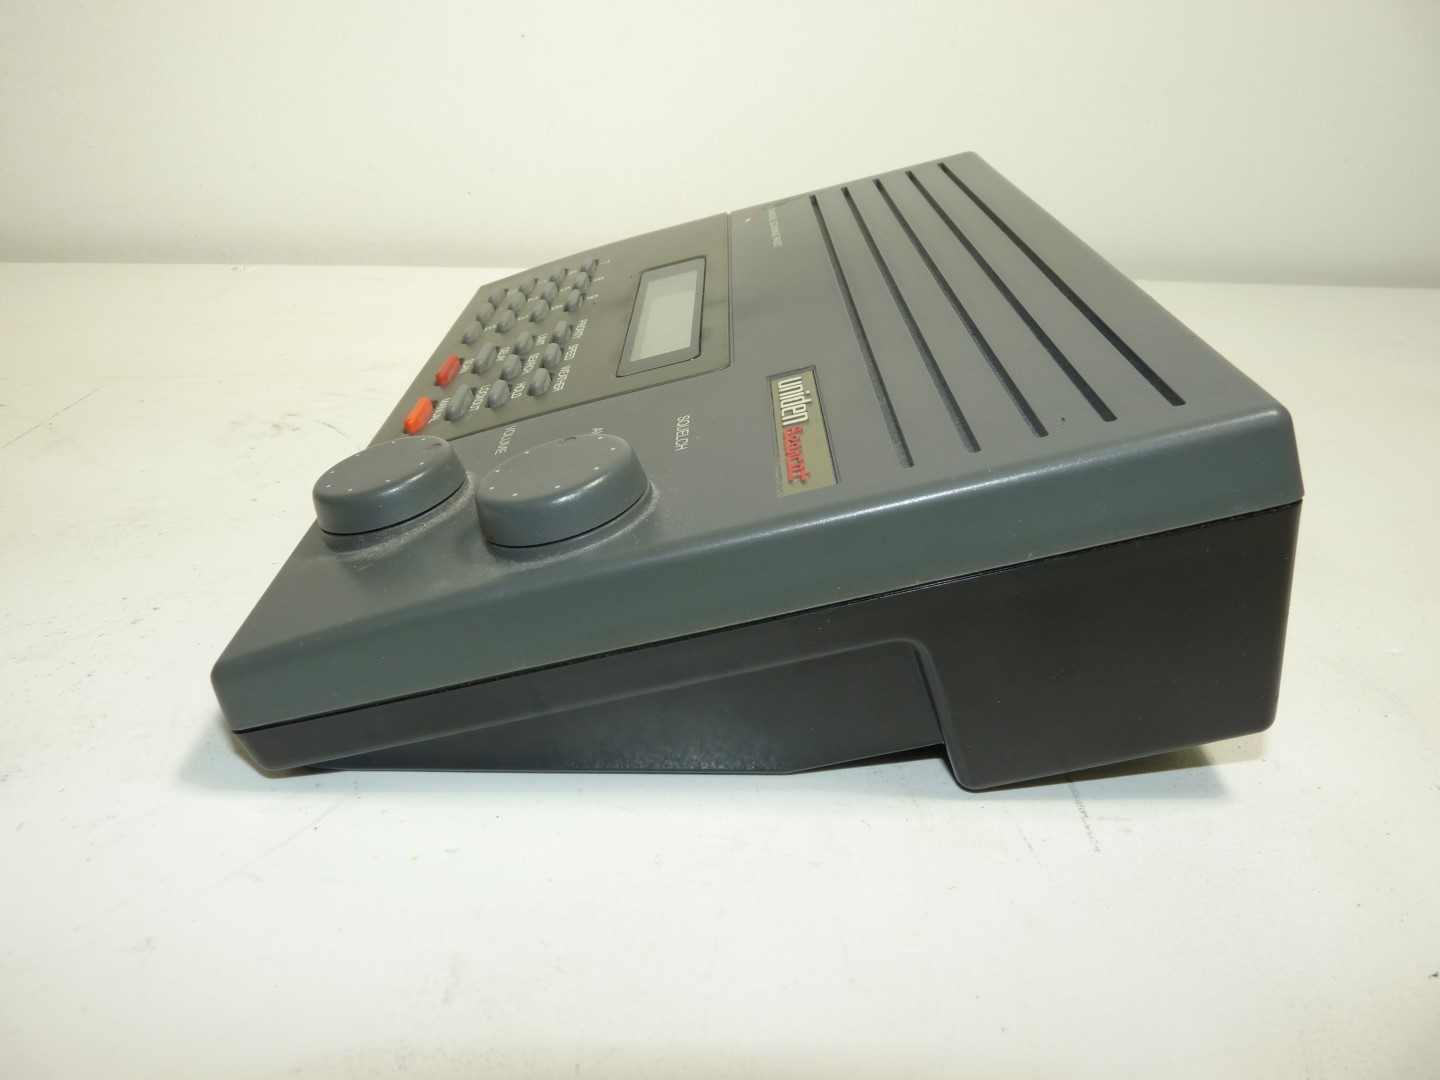 Uniden Bearcat BC-177XLT 16-Channel Scanning Radio (NO Power Supply) Used